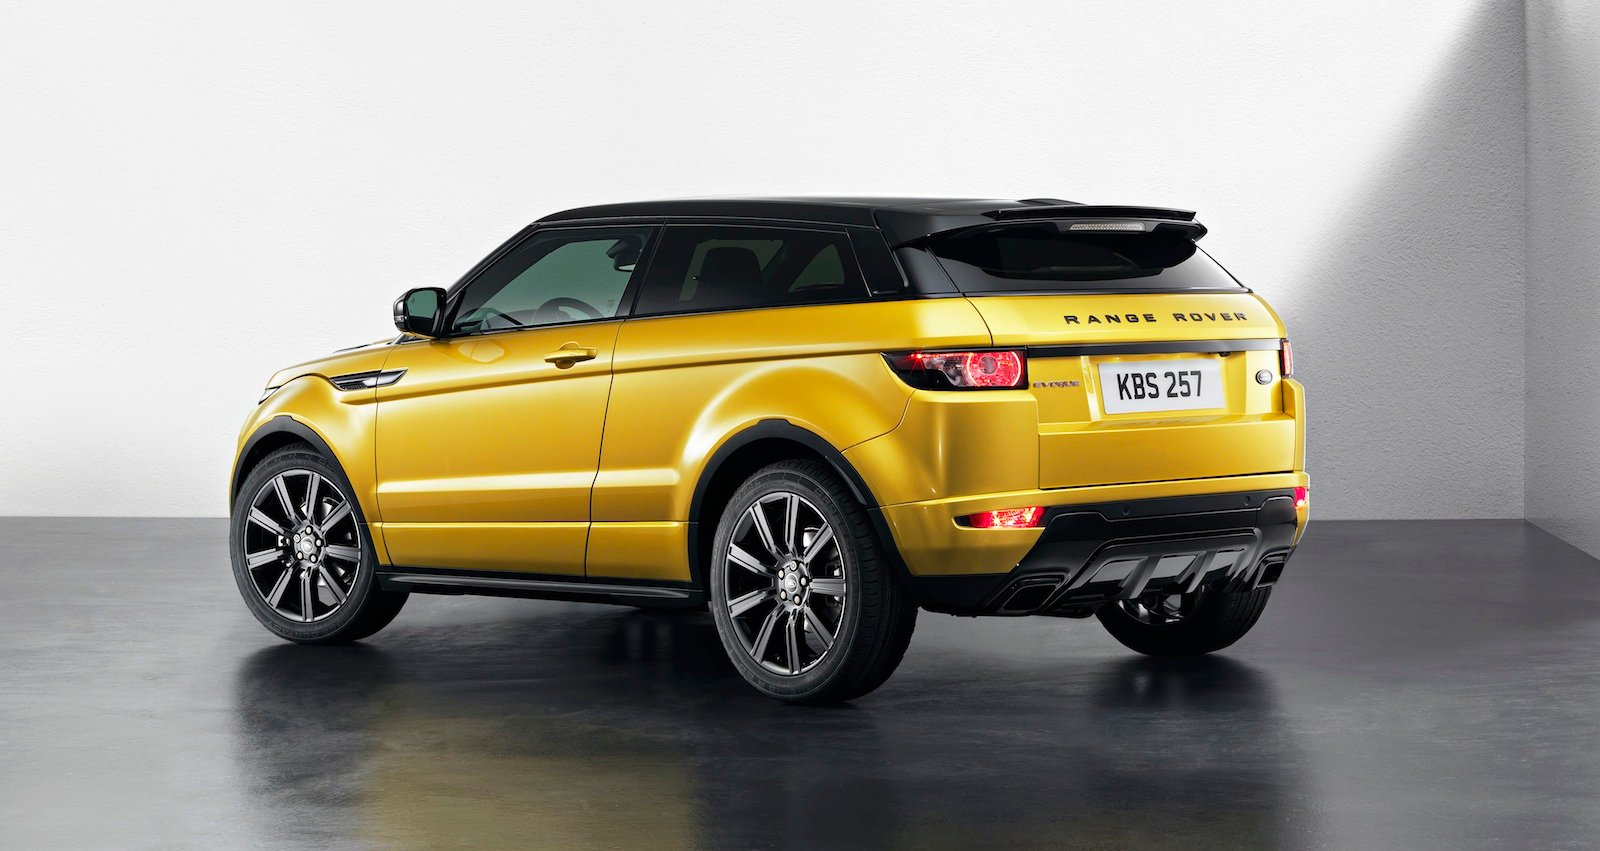 range rover evoque sicilian yellow limited edition revealed photos 1 of 7. Black Bedroom Furniture Sets. Home Design Ideas